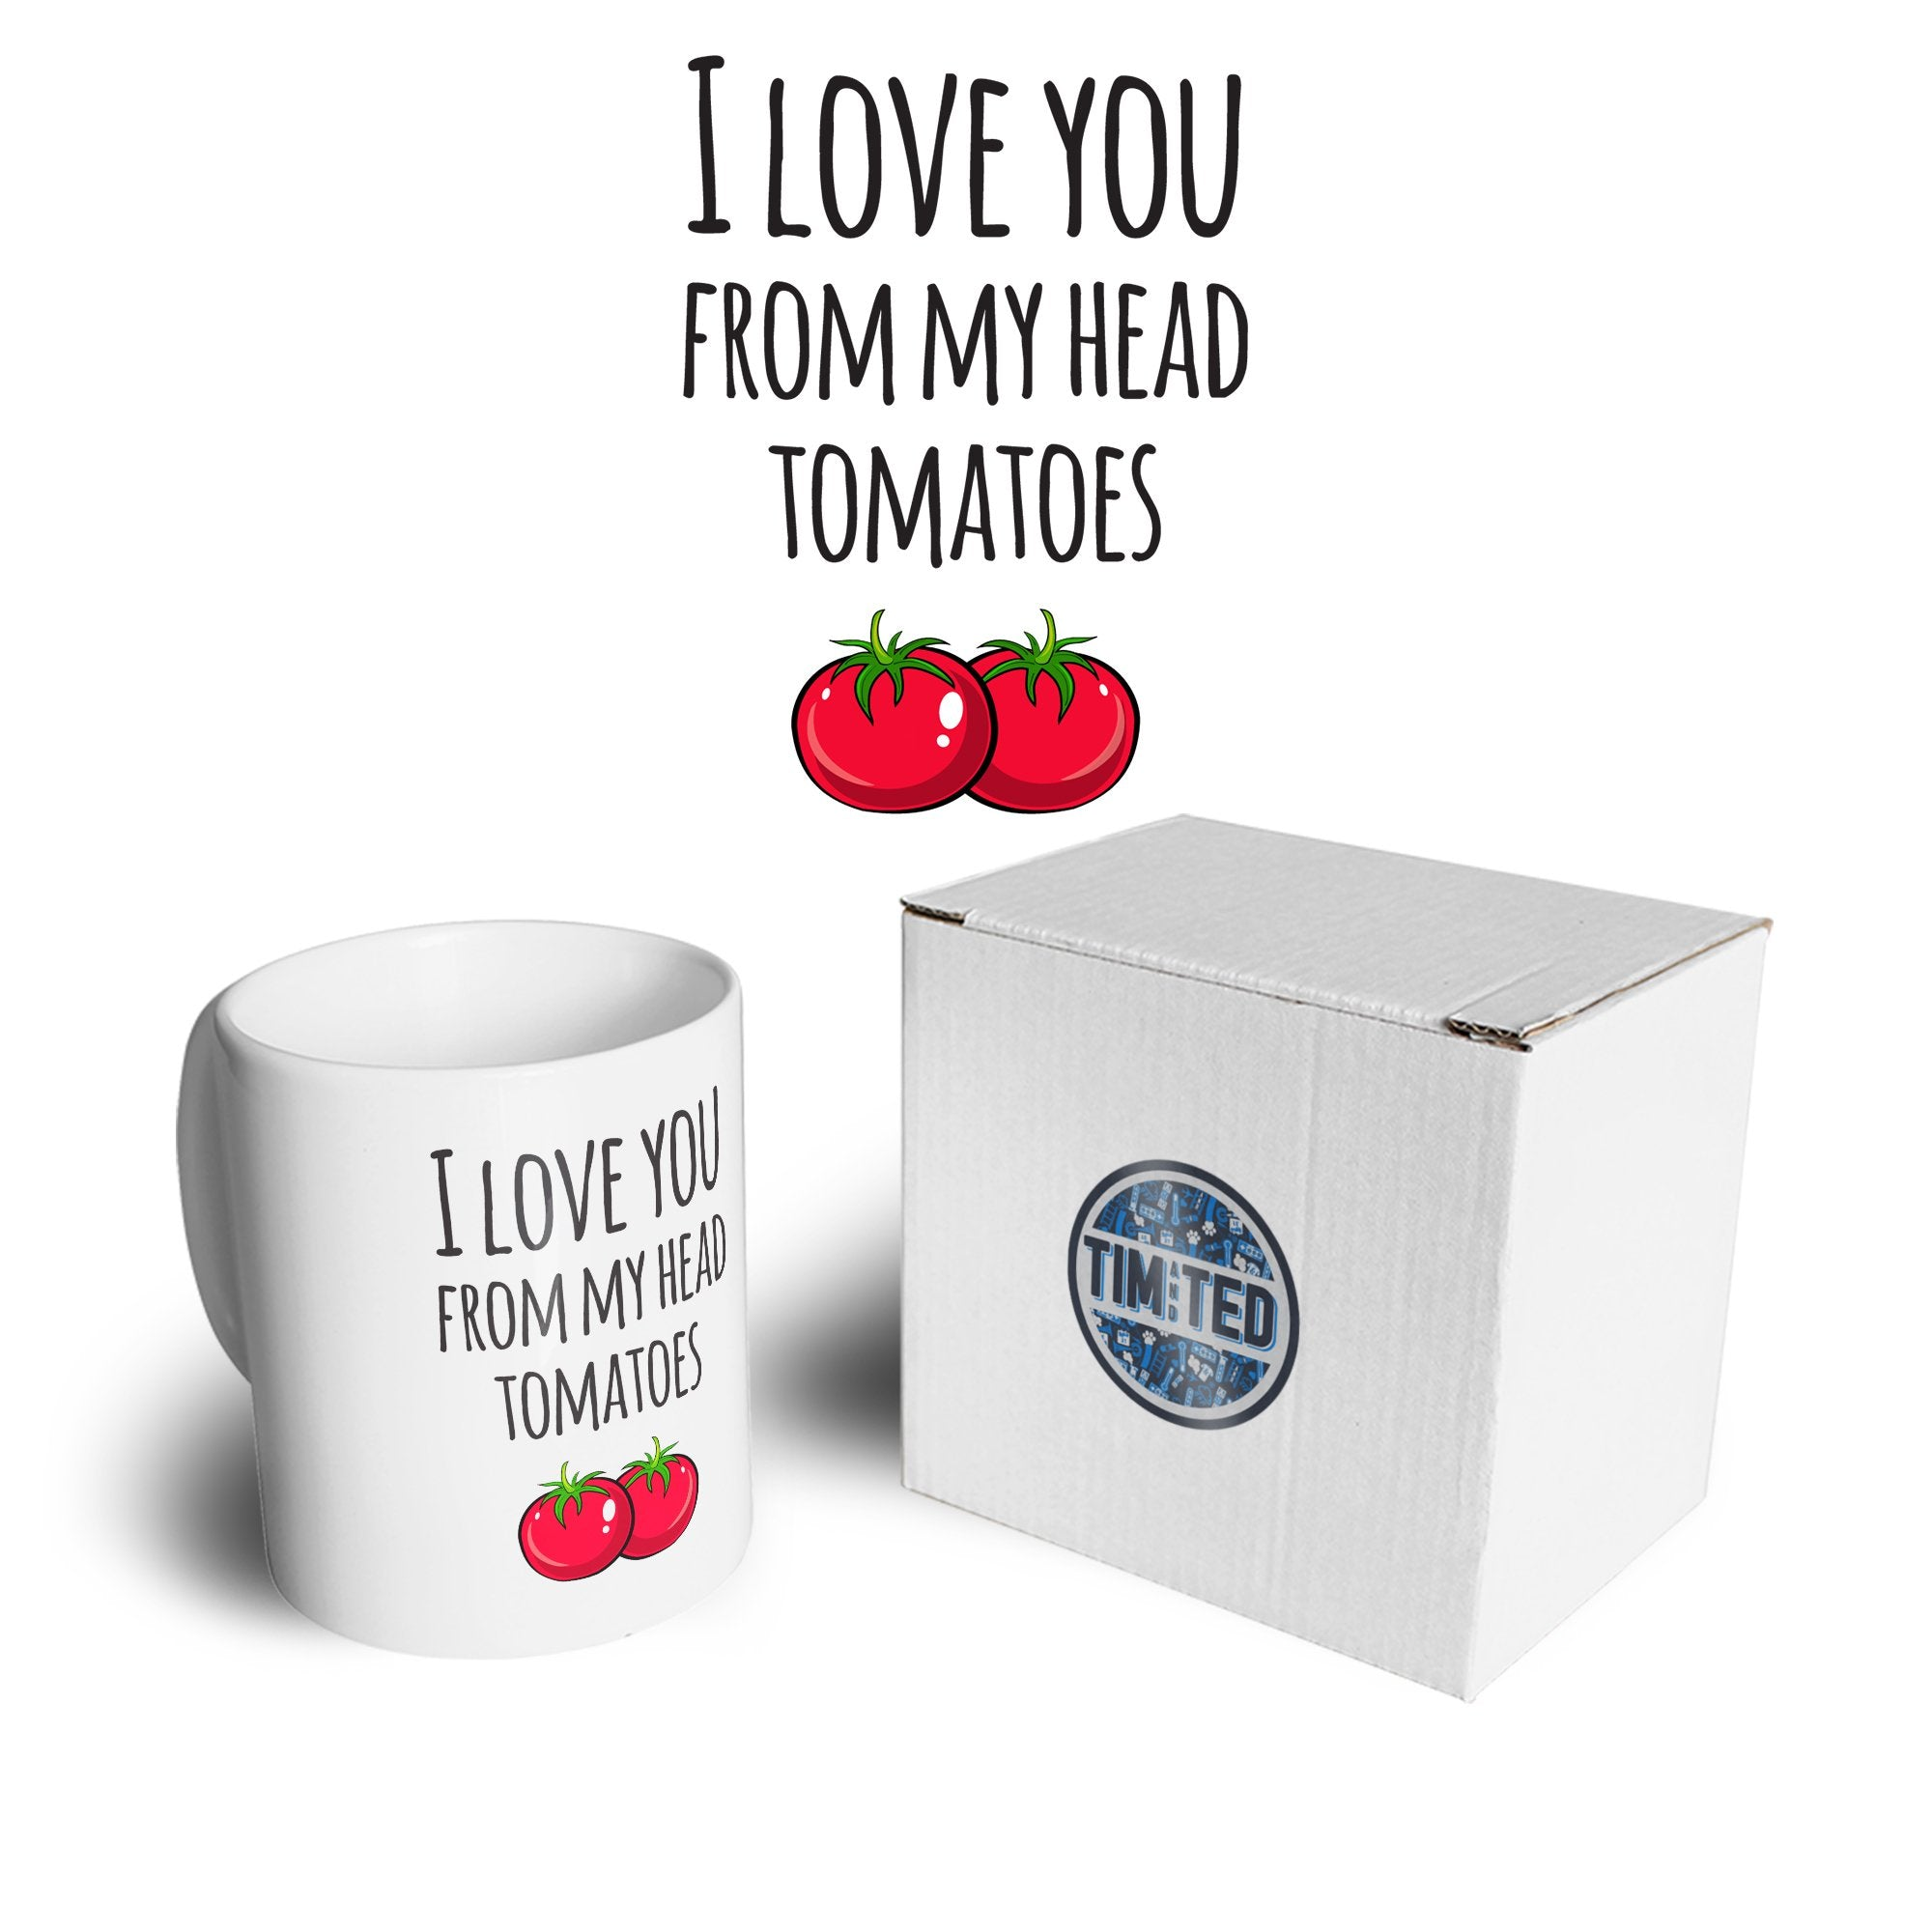 Valentines Pun Mug Love You From My Head Tomatoes Coffee Tea Cup